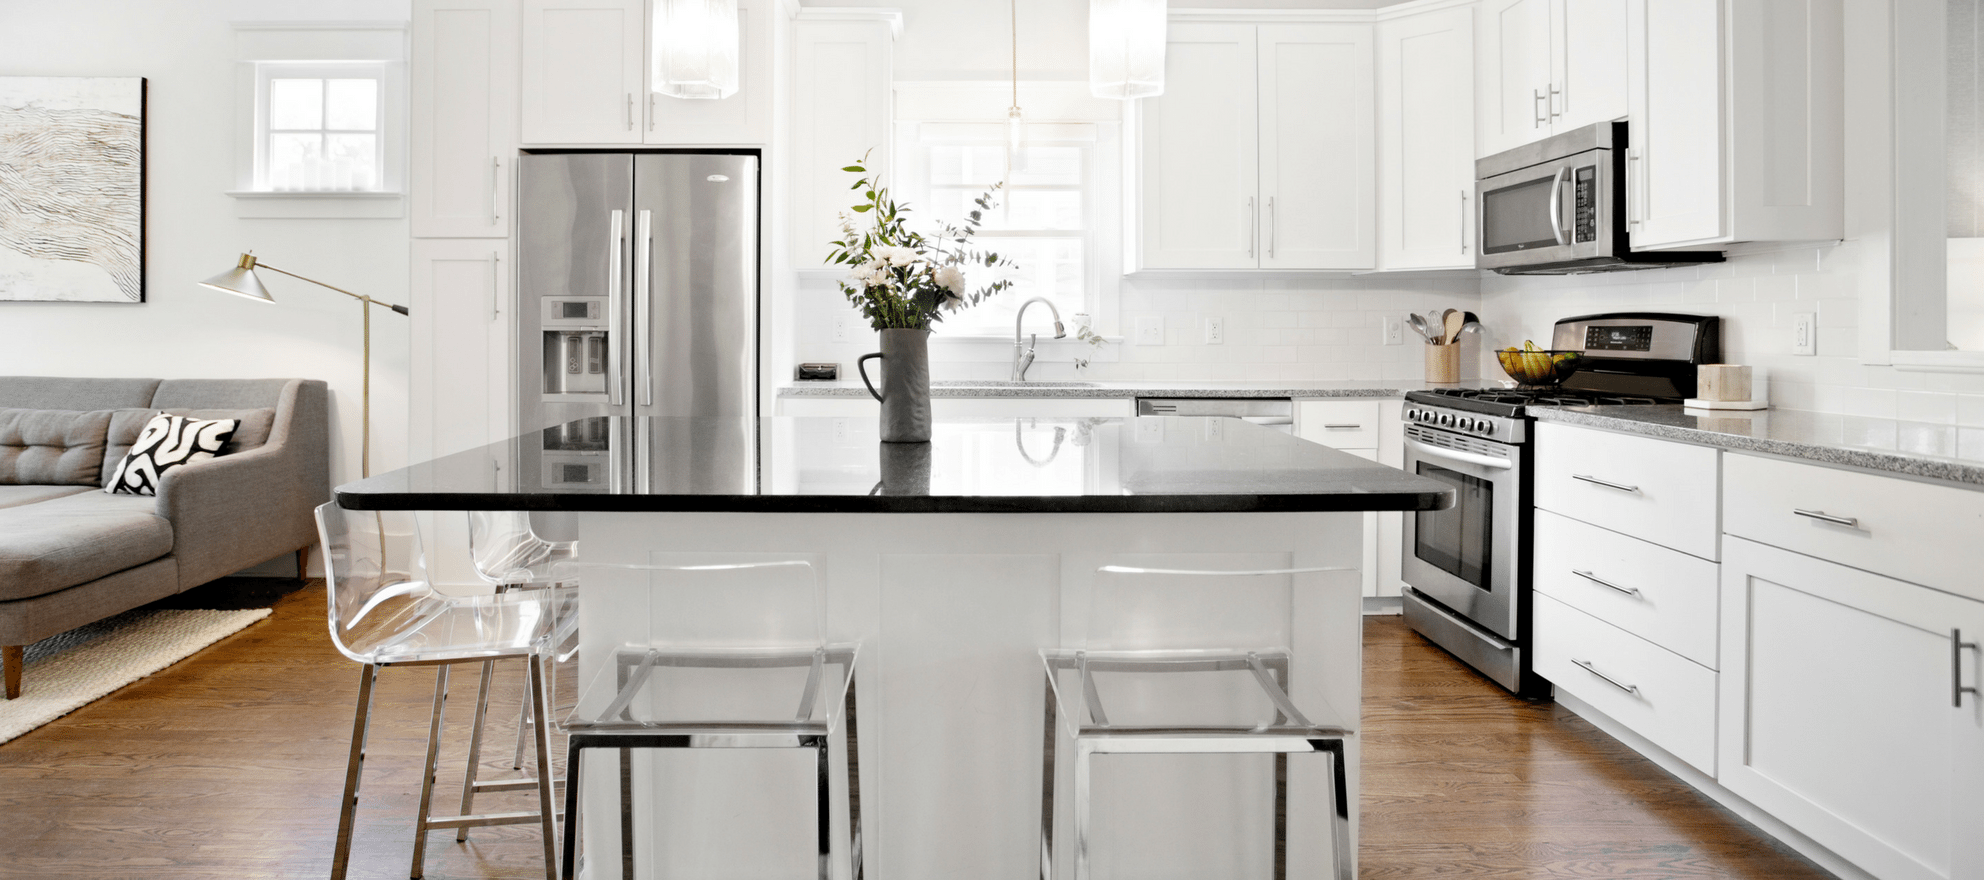 What's Hot And What's Not In 2018 Kitchen Trends